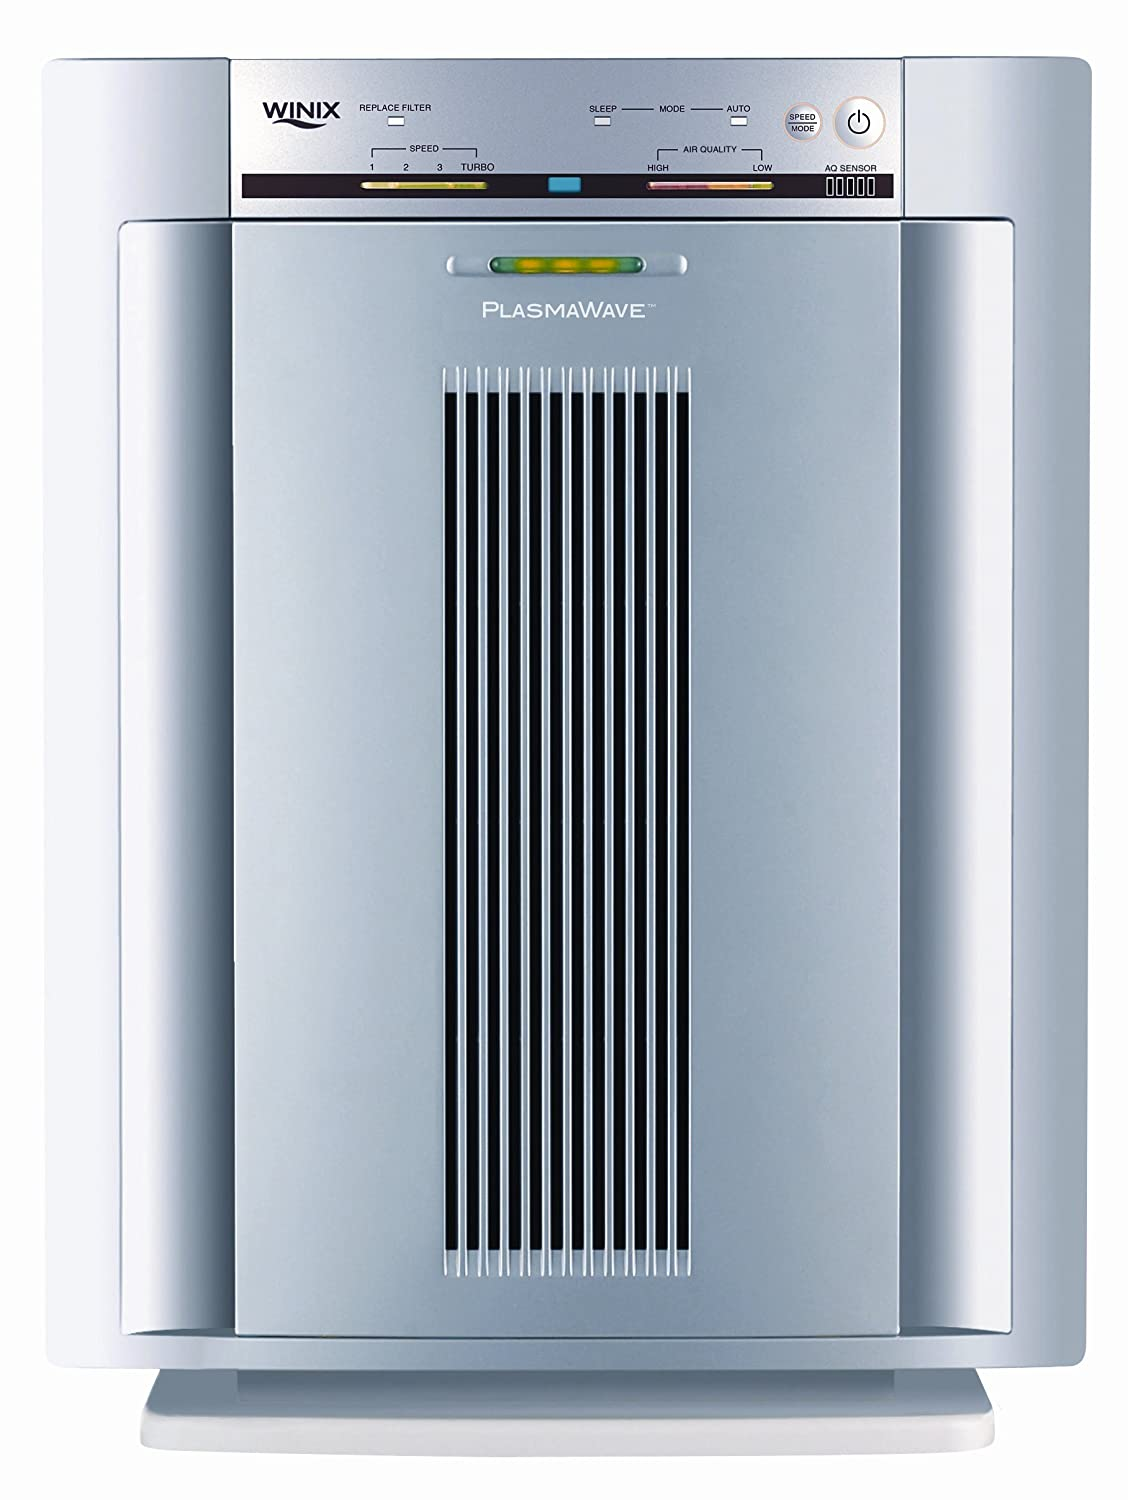 amazoncom winix plasmawave 5300 air cleaner model home kitchen - Air Filter Home